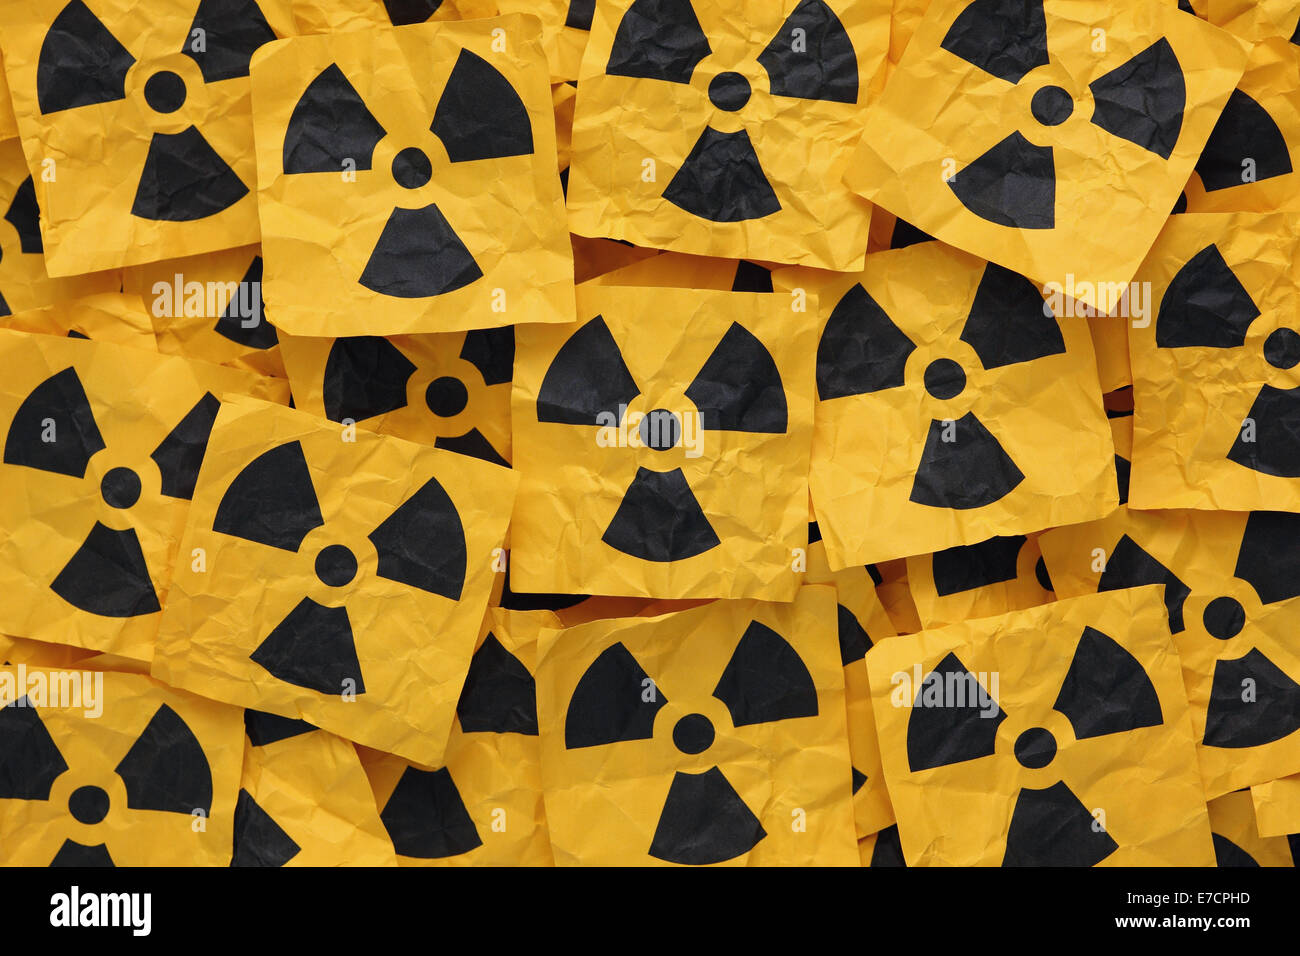 Crumpled adhesive notes with Radioactive Sign. Anti radiation concept. - Stock Image